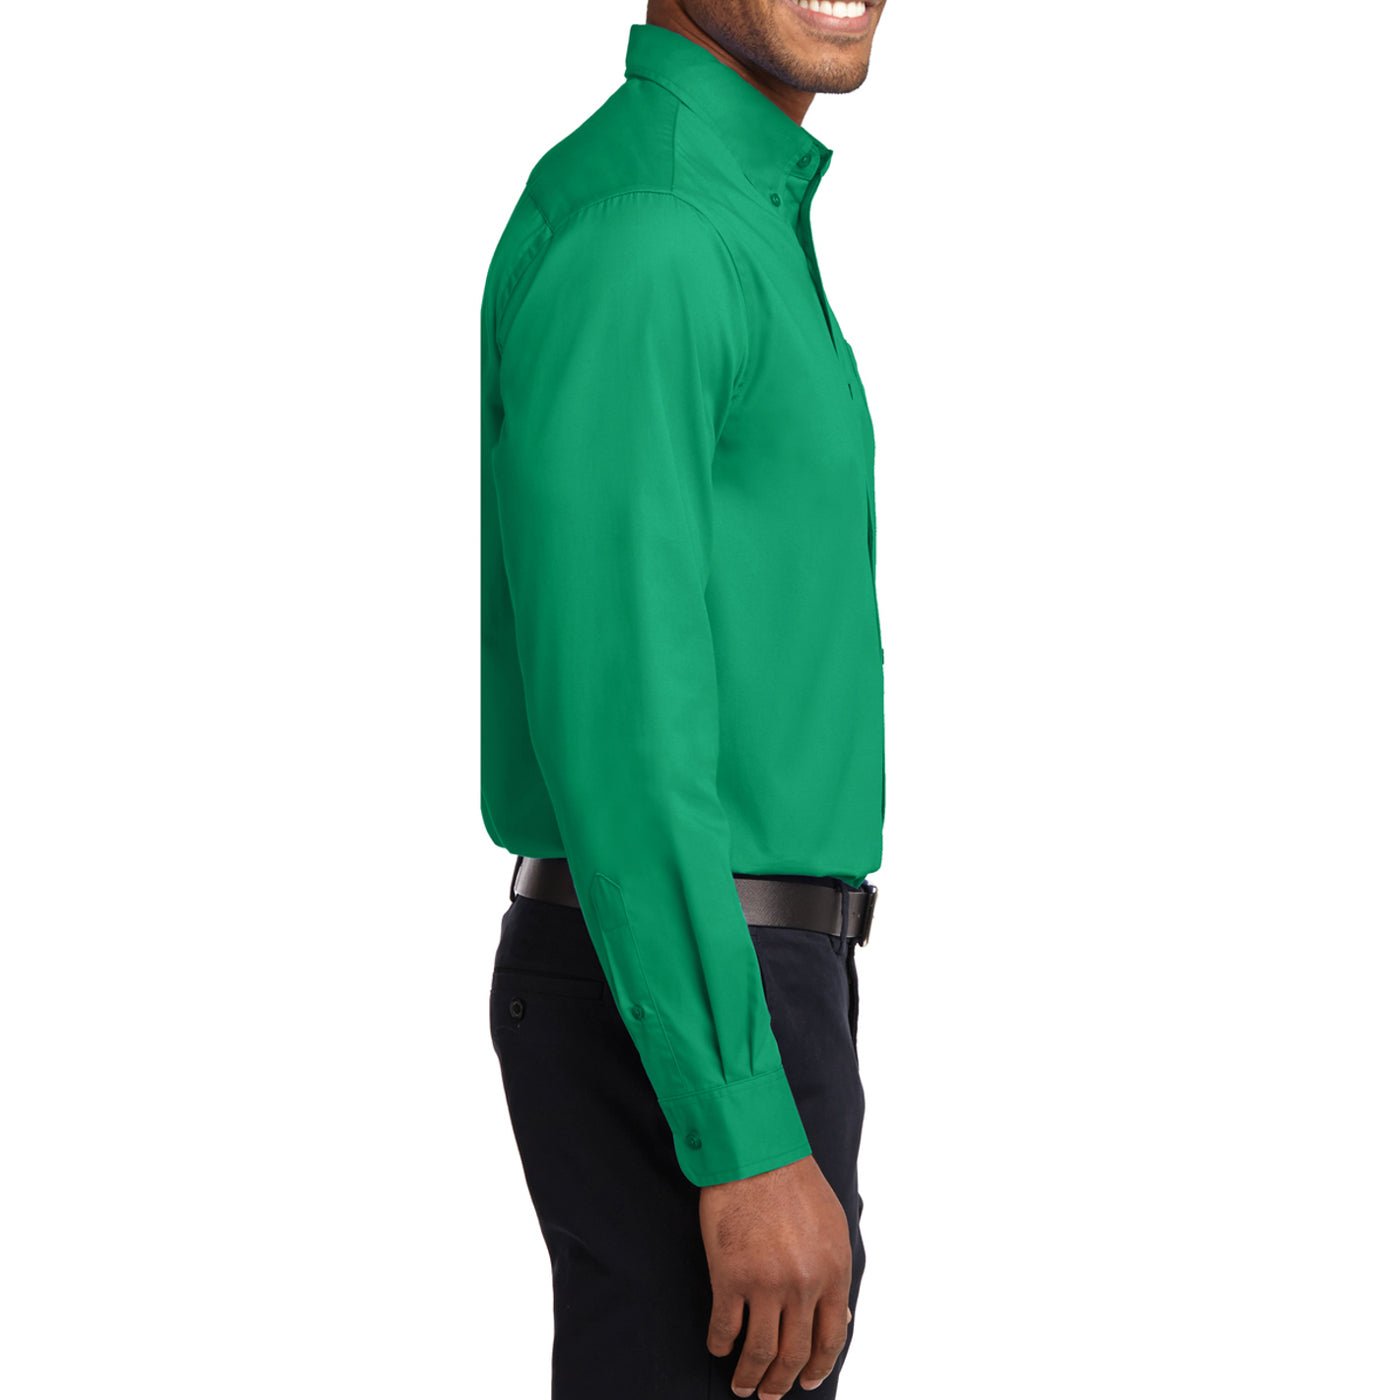 Men's Long Sleeve Easy Care Shirt - Court Green - Side